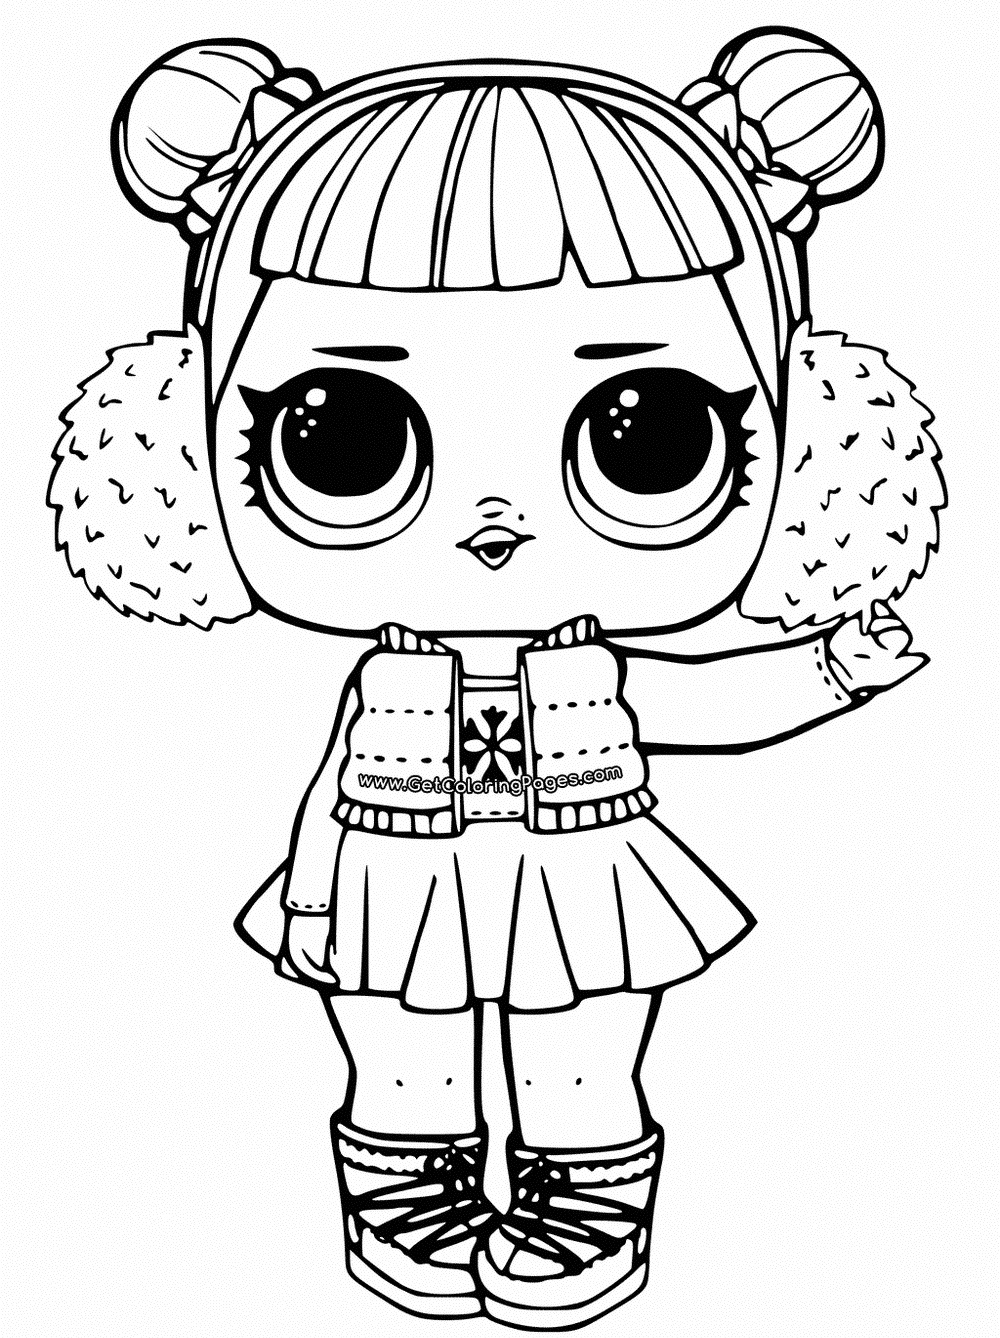 dolls colouring pages lol dolls coloring pages at getcoloringscom free colouring dolls pages